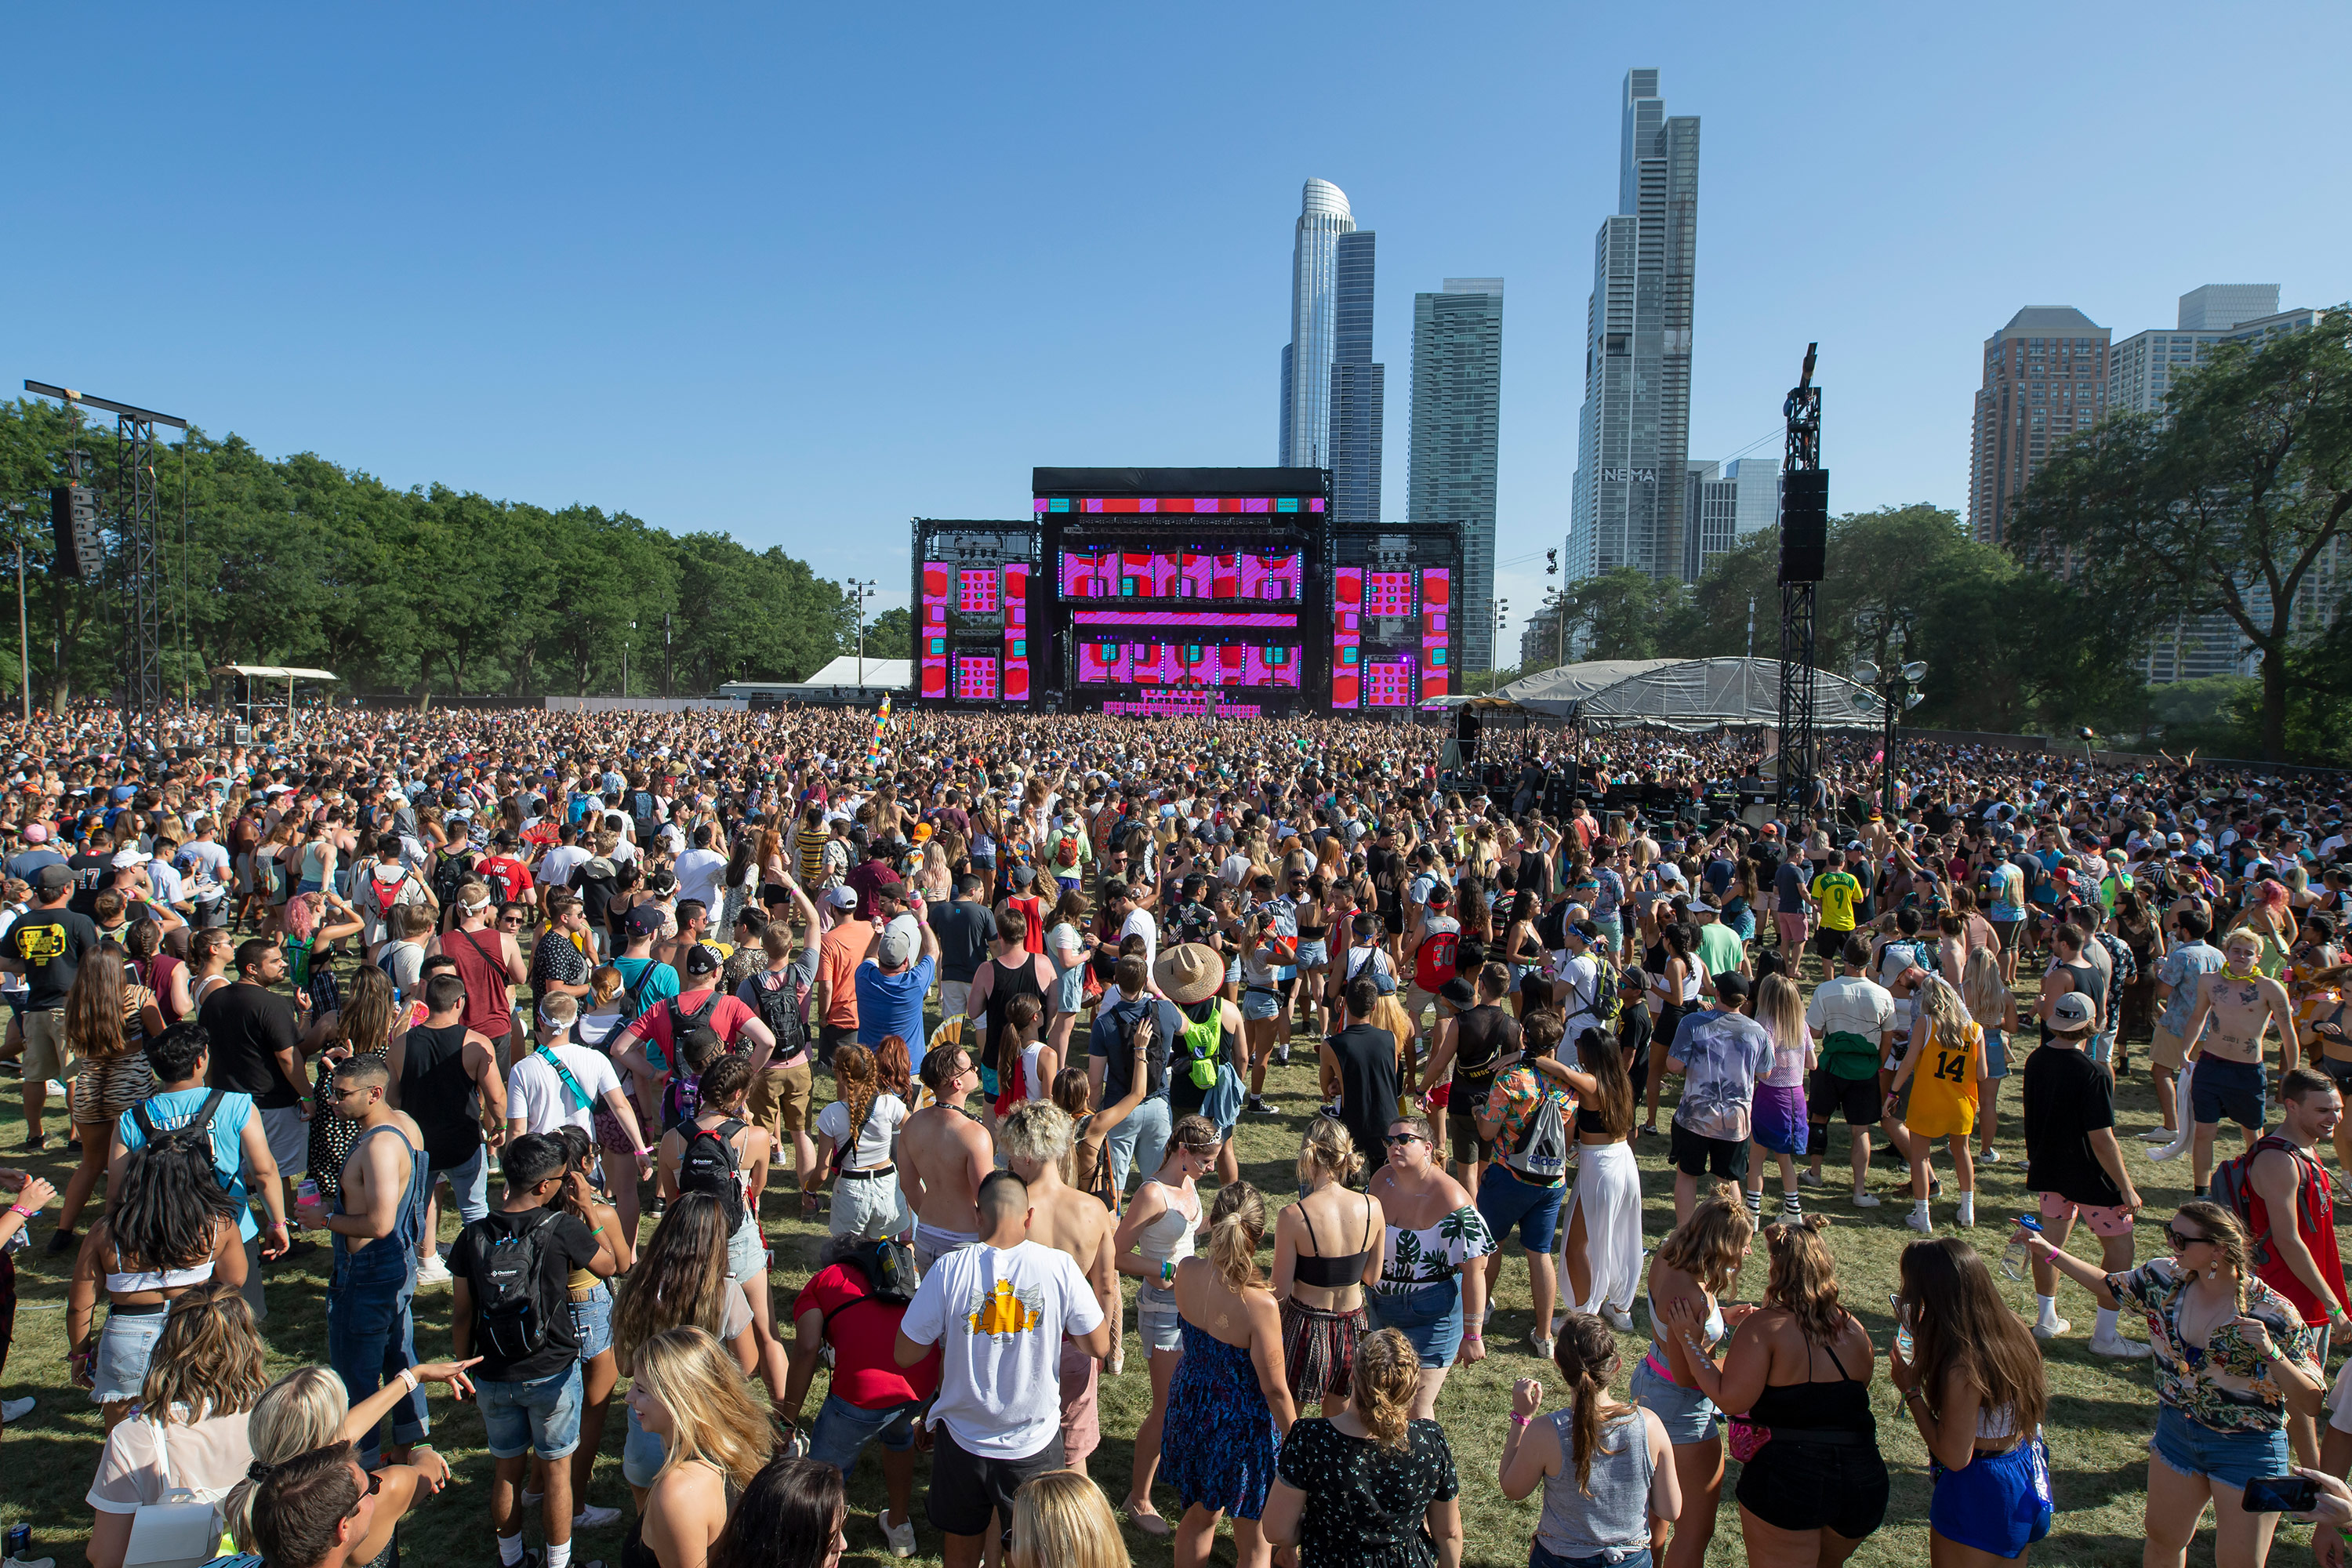 Festival goers attend Lollapalooza at Grant Park in Chicago, in 2019.